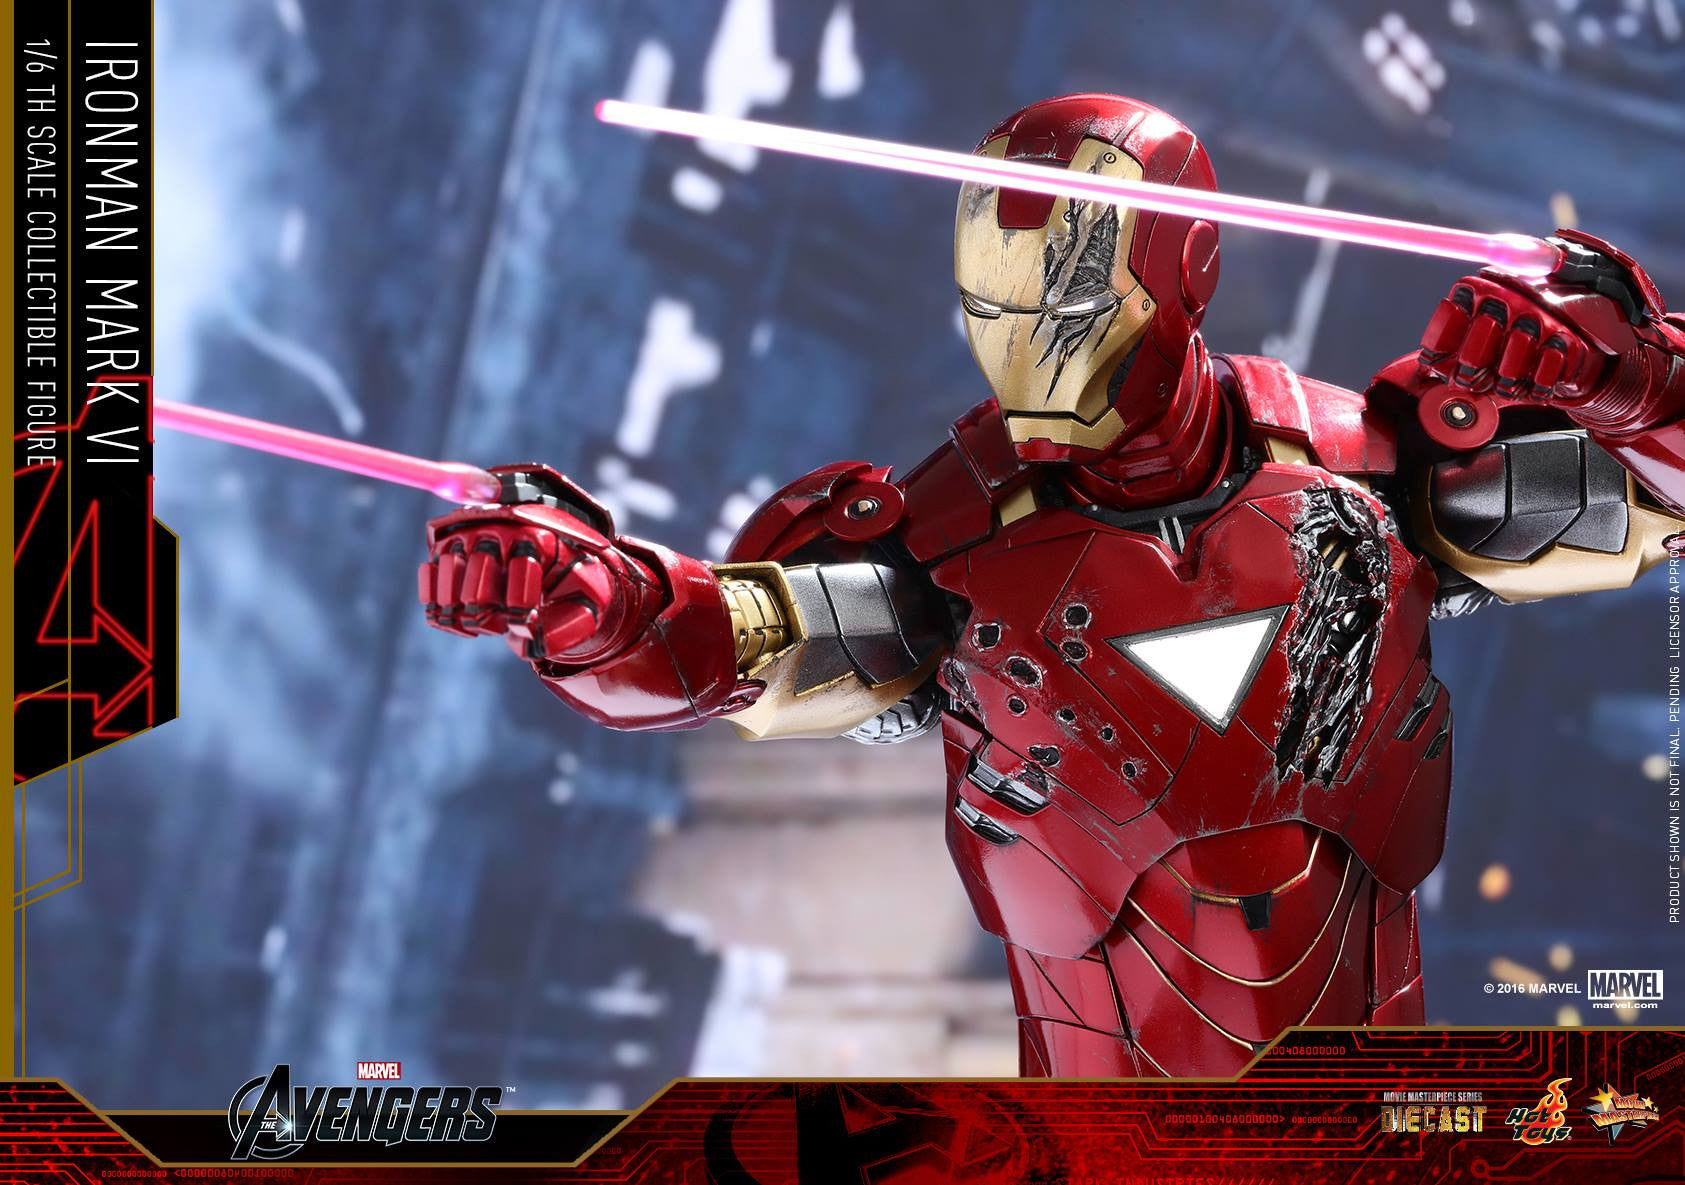 Hot Toys - MMS378D17 - The Avengers - Iron Man Mark VI (DIECAST) (Normal Edition) - Marvelous Toys - 21